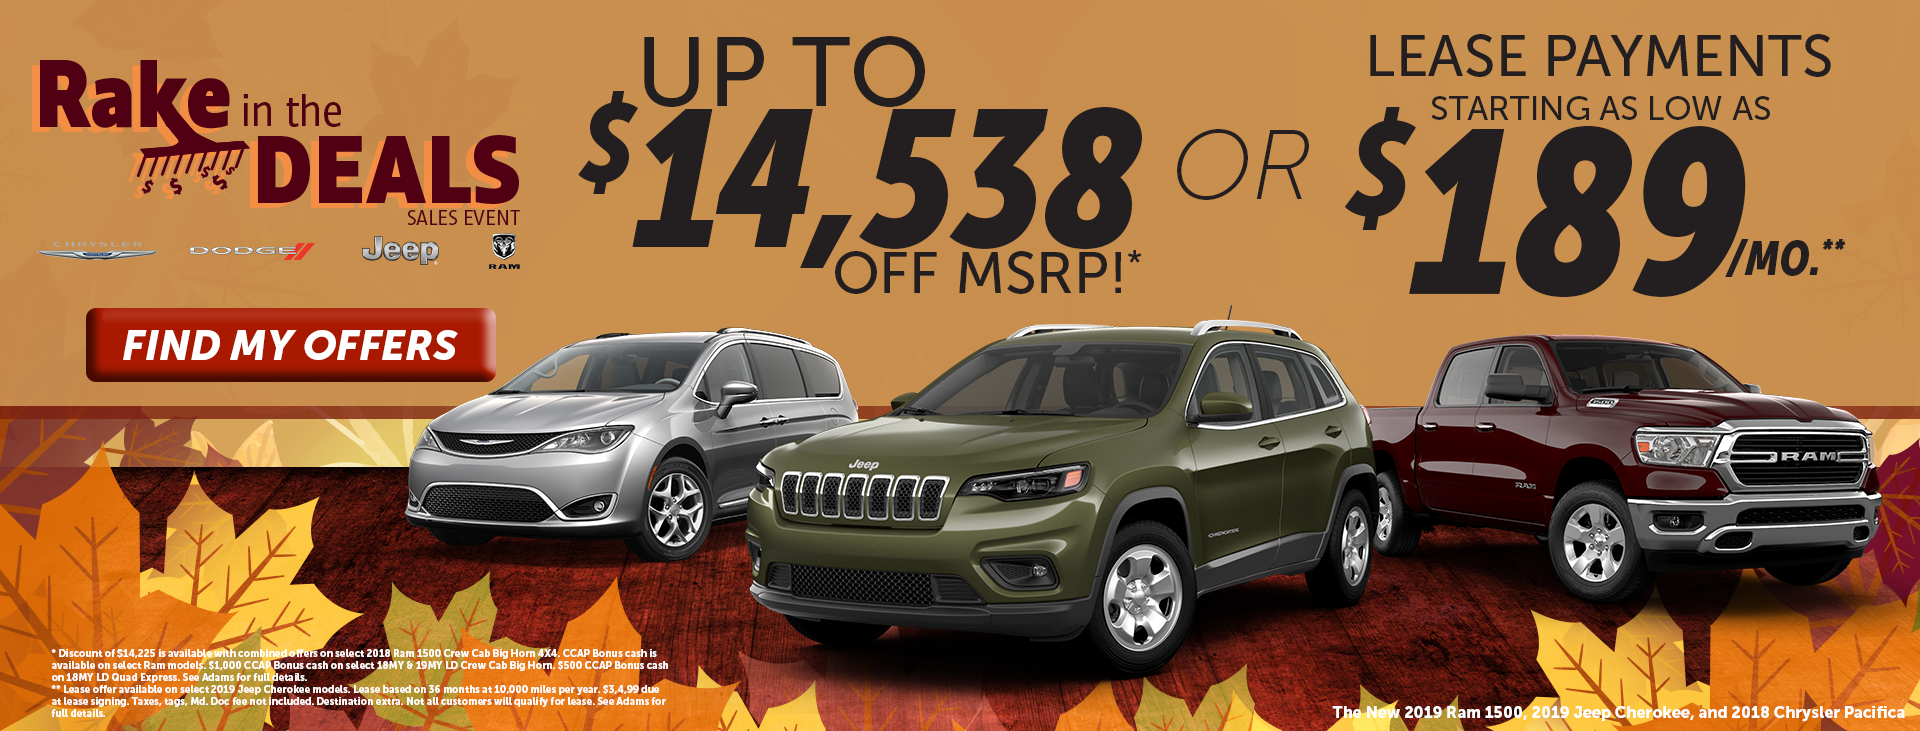 Rake in the deals!